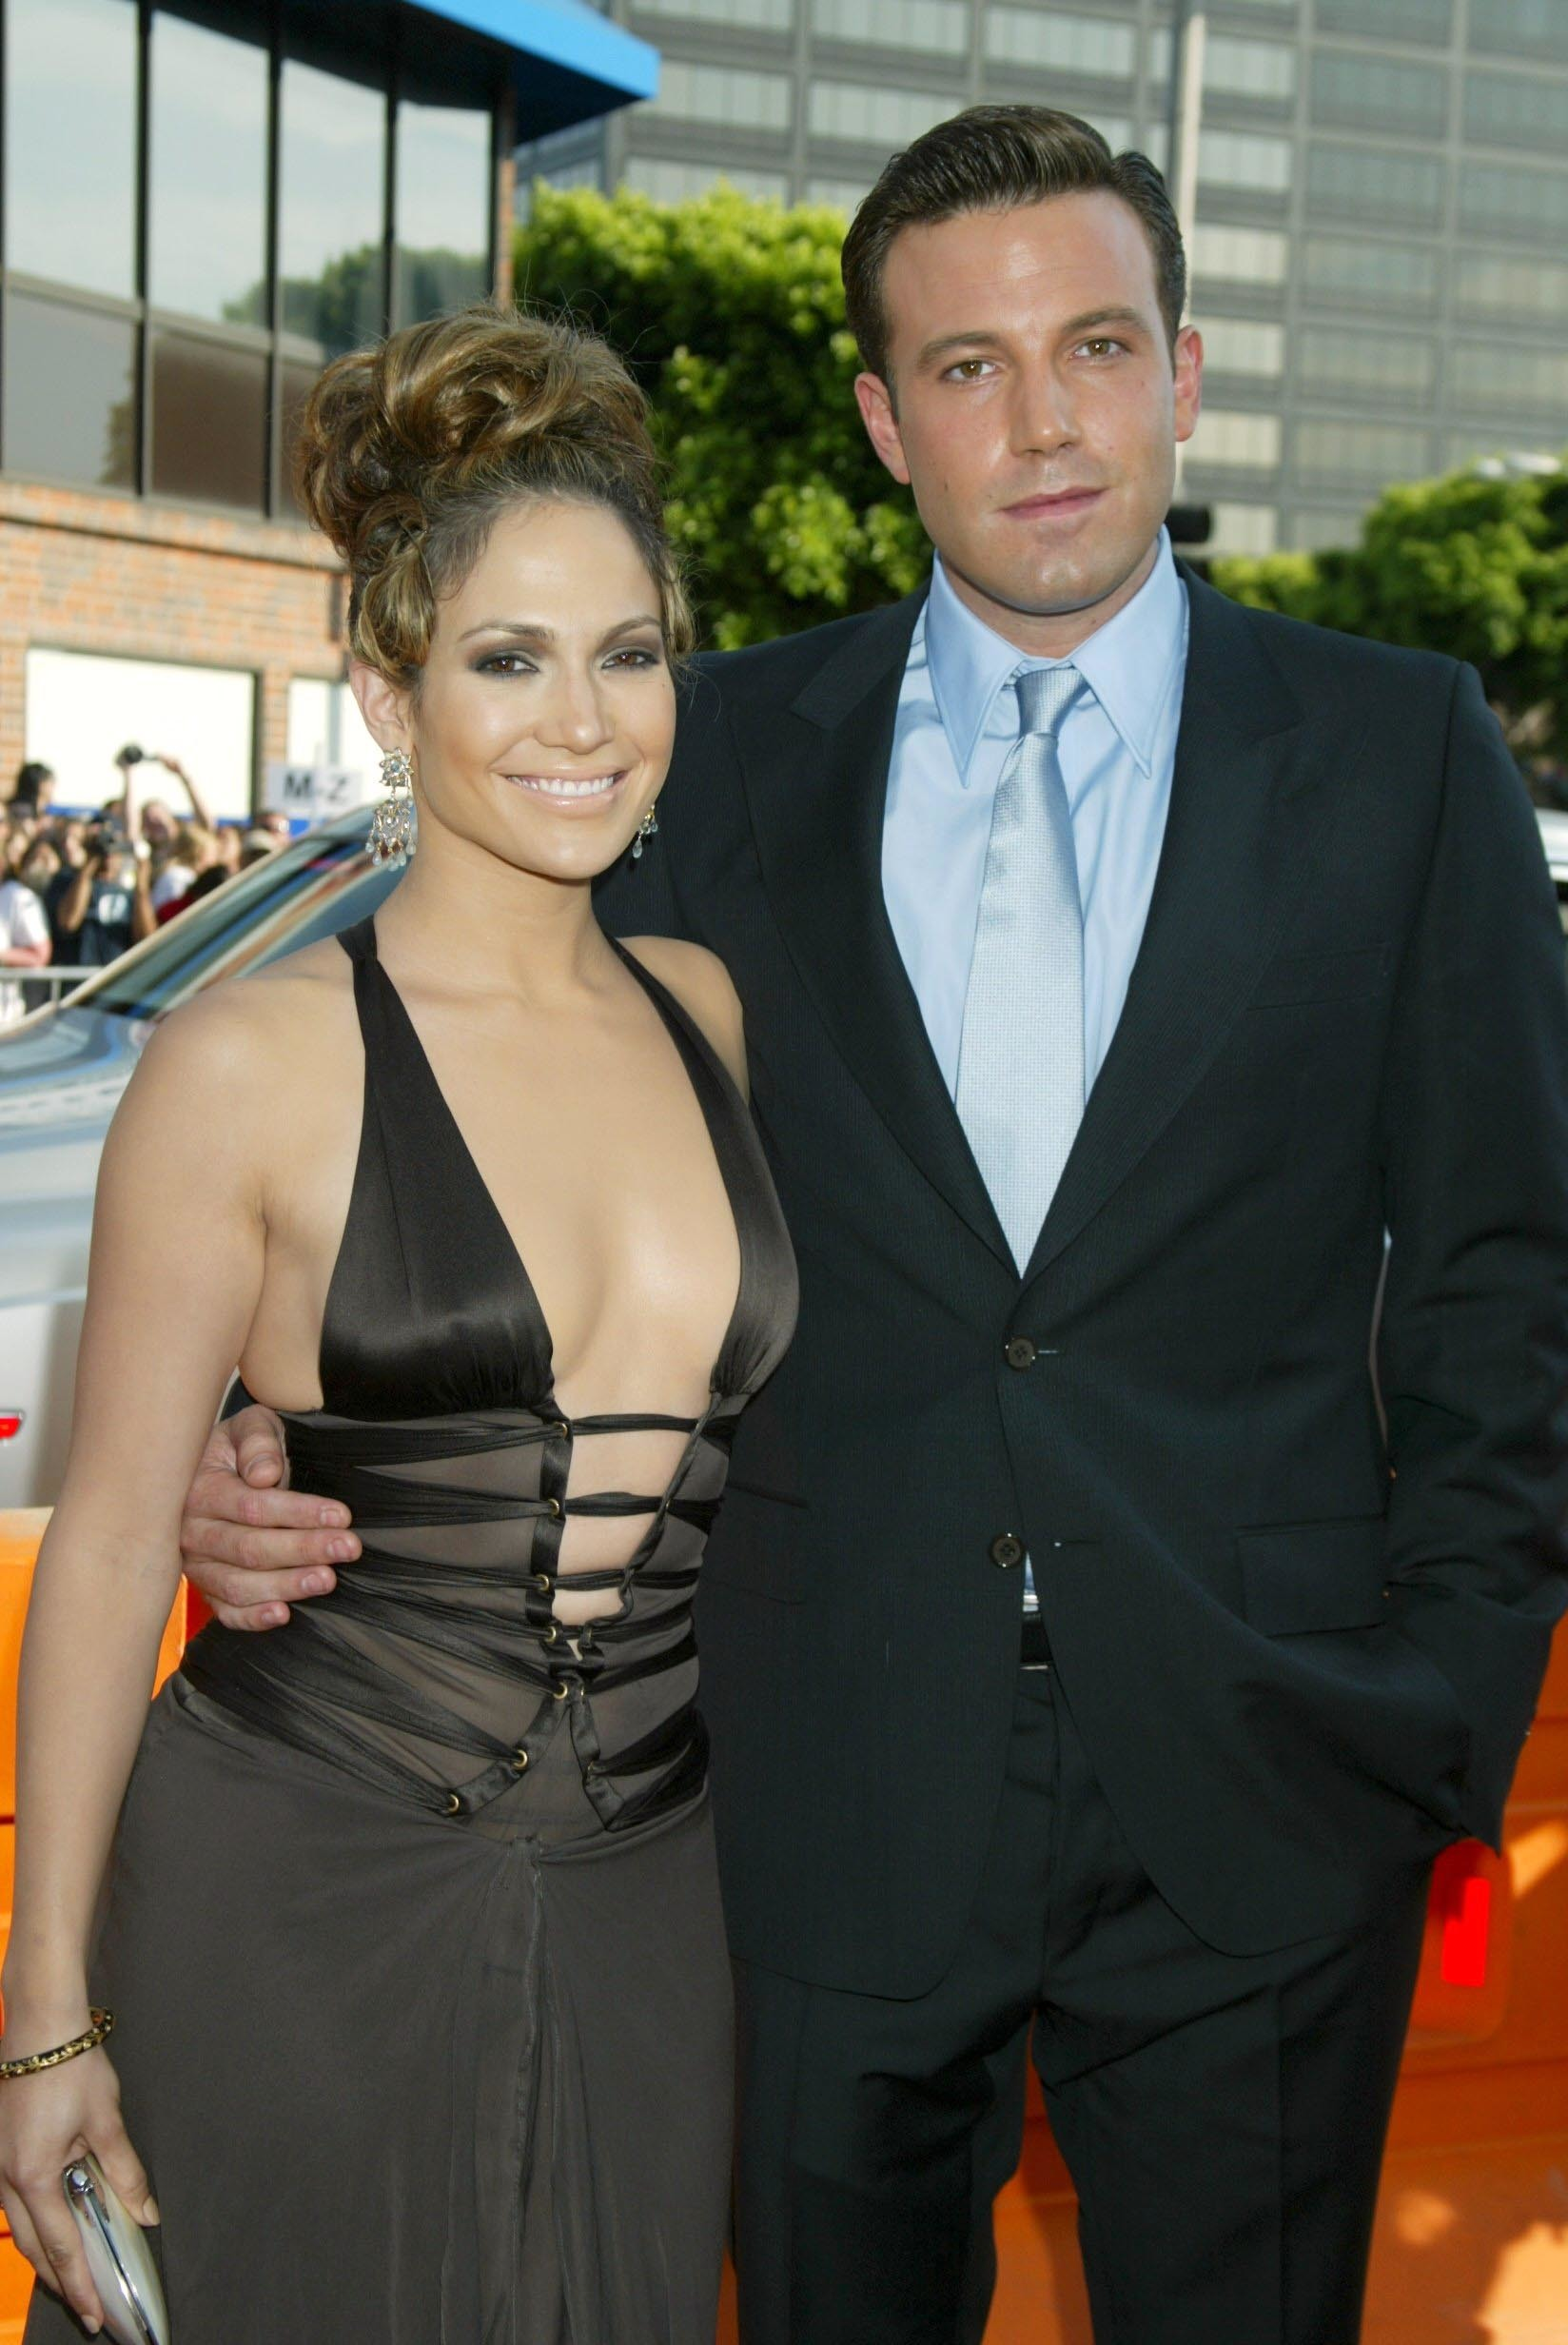 Reveal: Broken celeb engagements ben affleck jennifer lopez